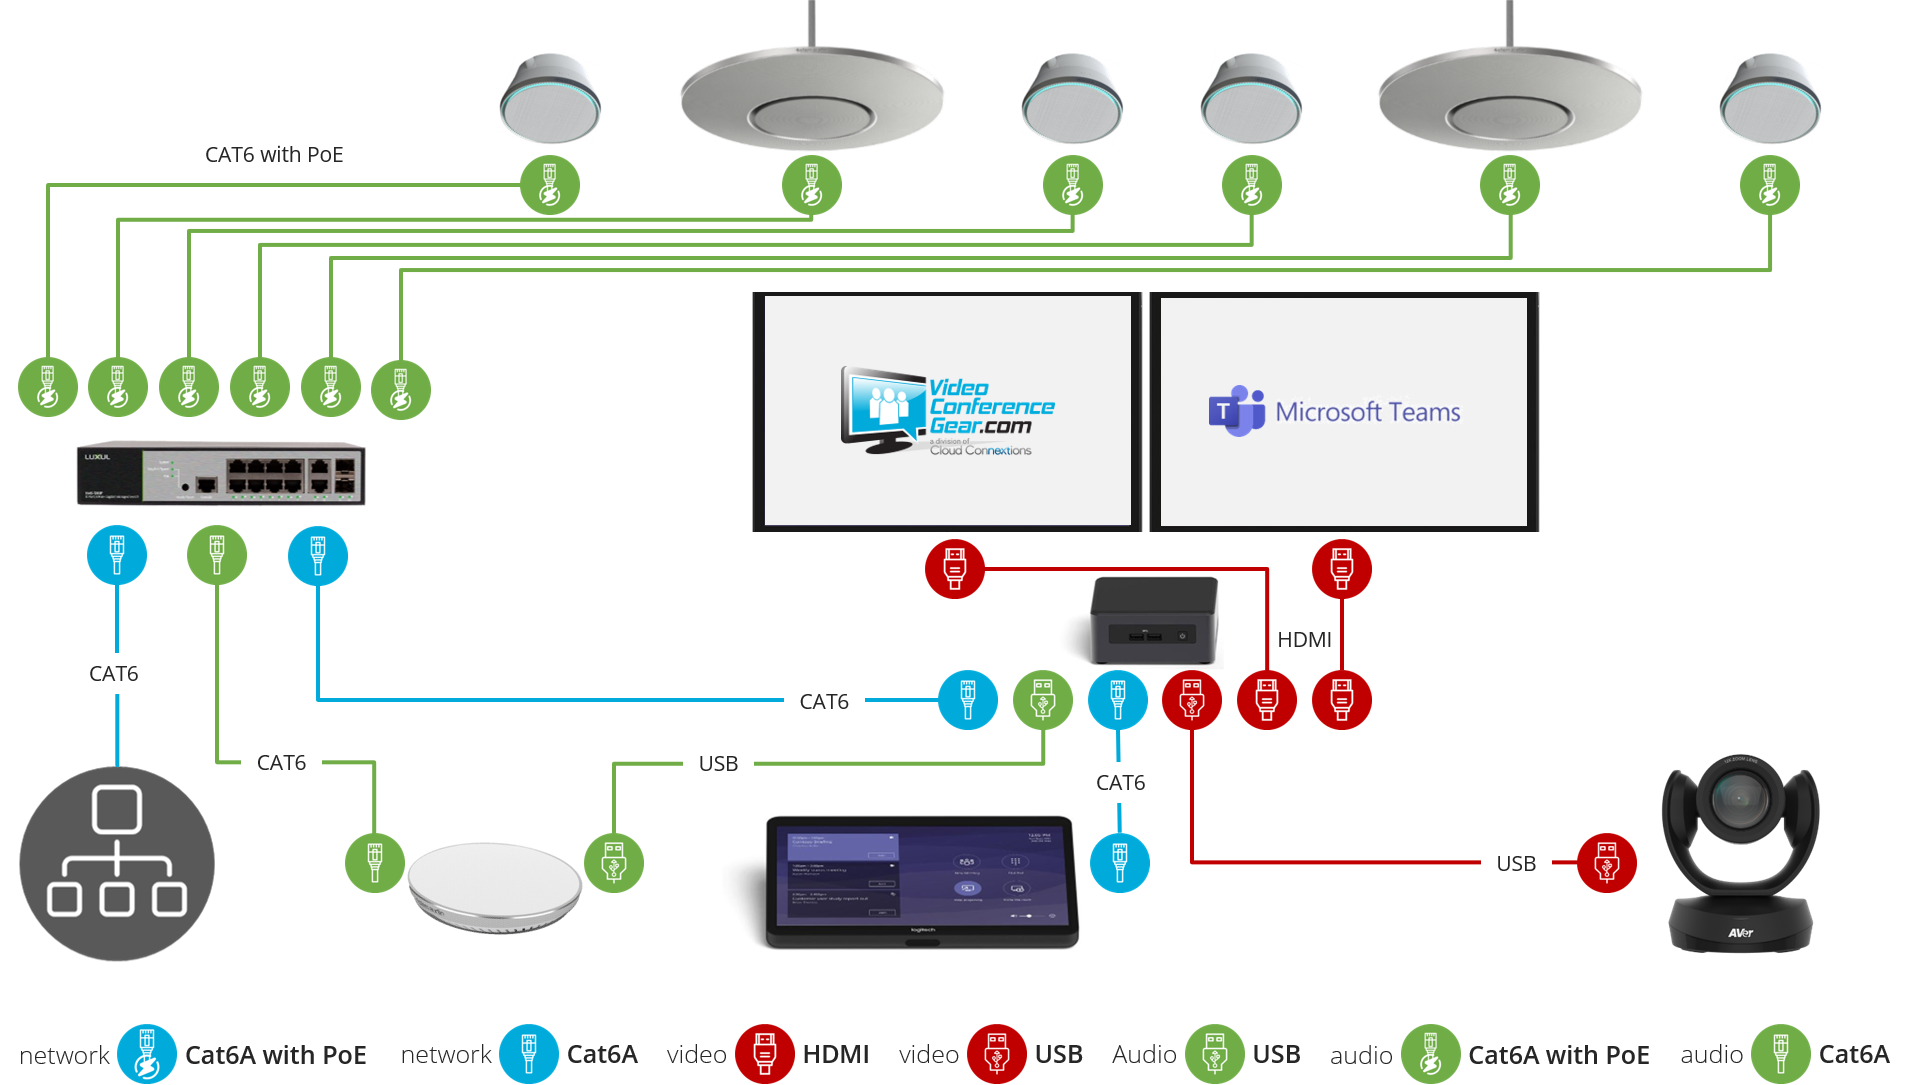 Microsoft Teams Kit Layout and Connection